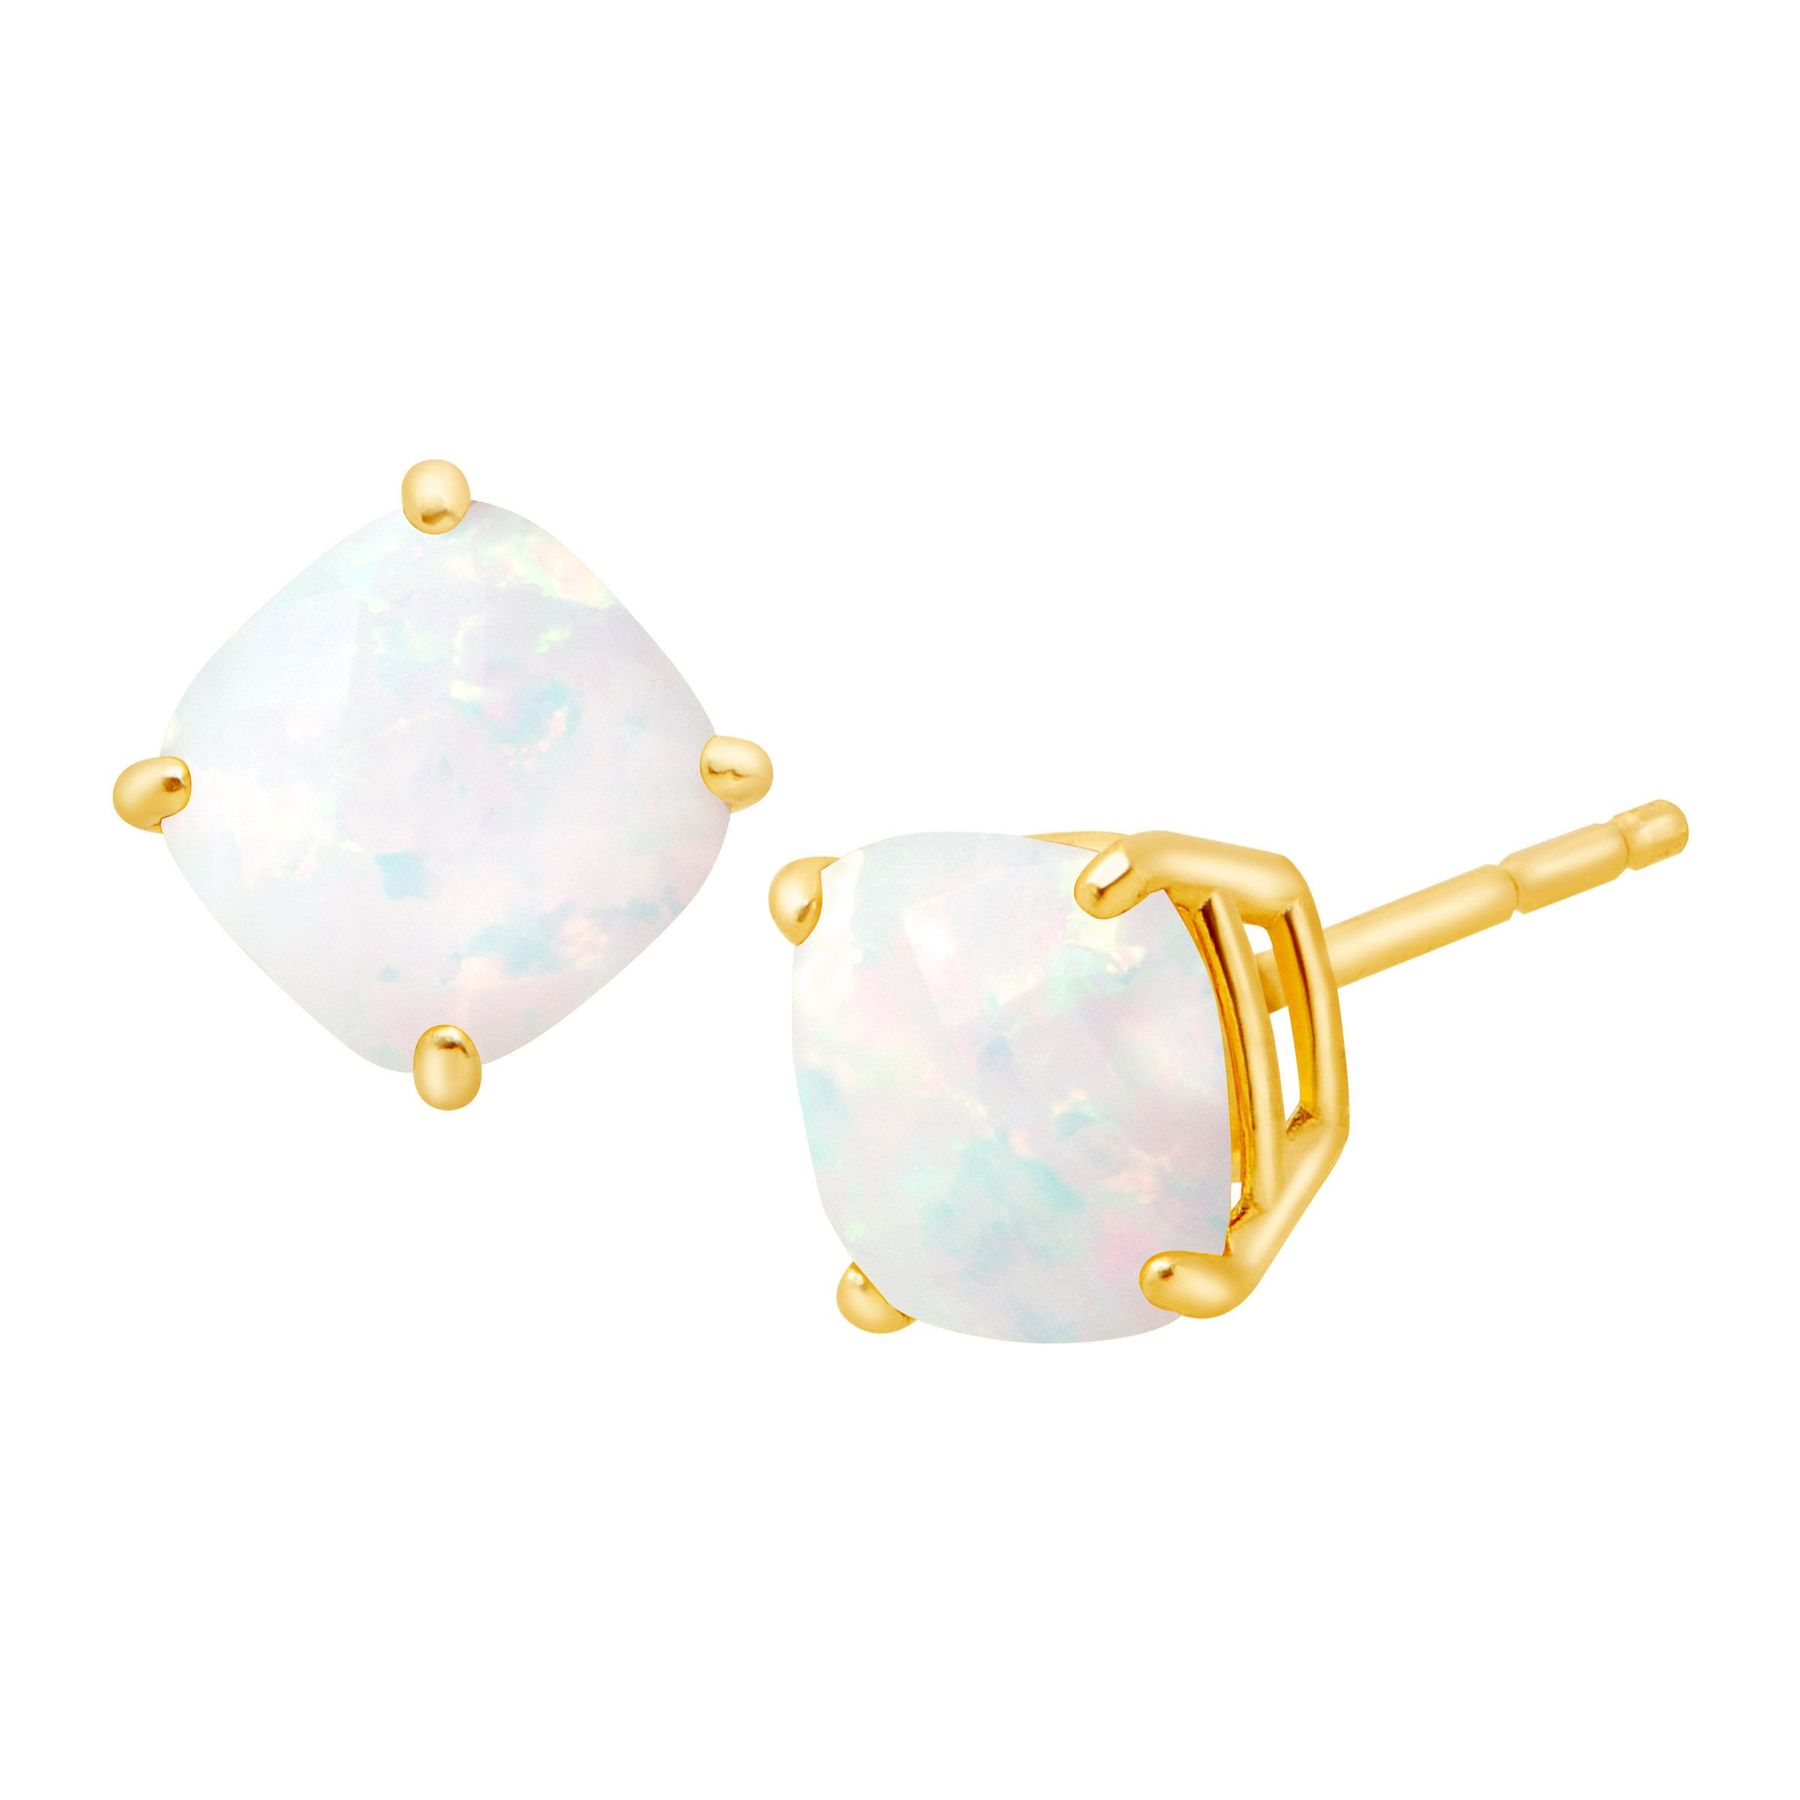 1 Ct Cushion Cut Opal Earrings